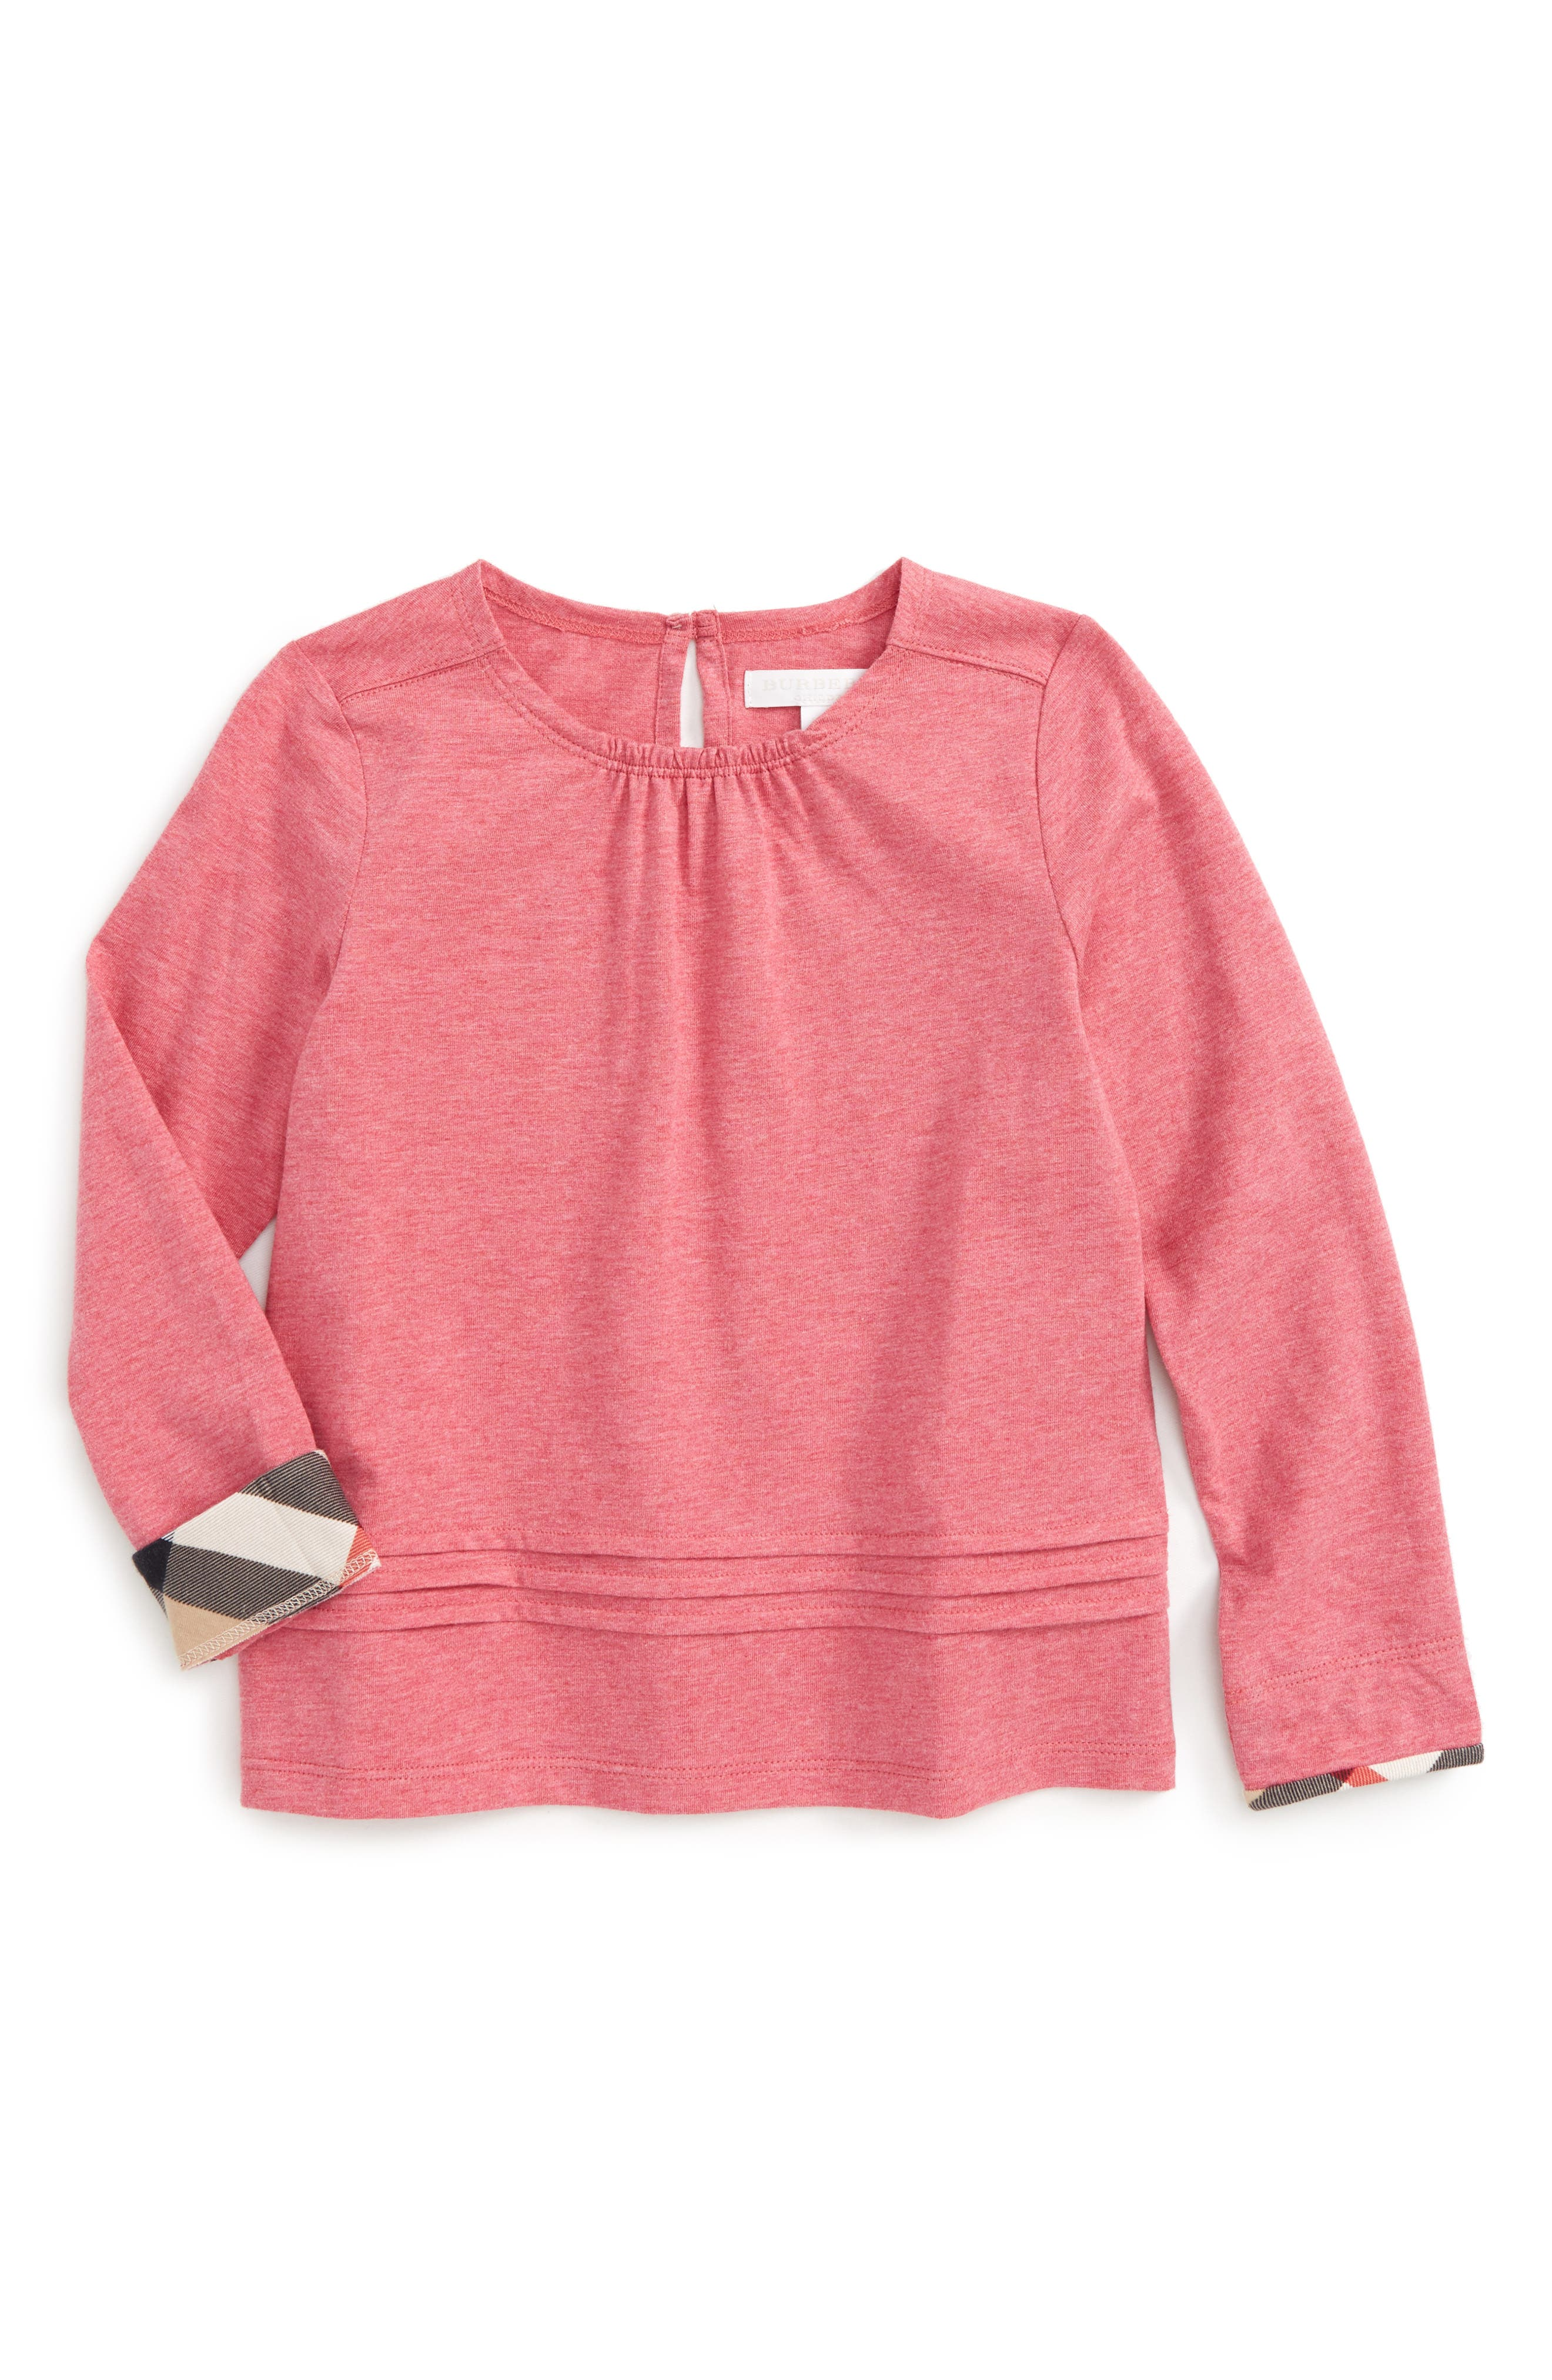 Alternate Image 1 Selected - Burberry Gisselle Cotton Top (Baby Girls)